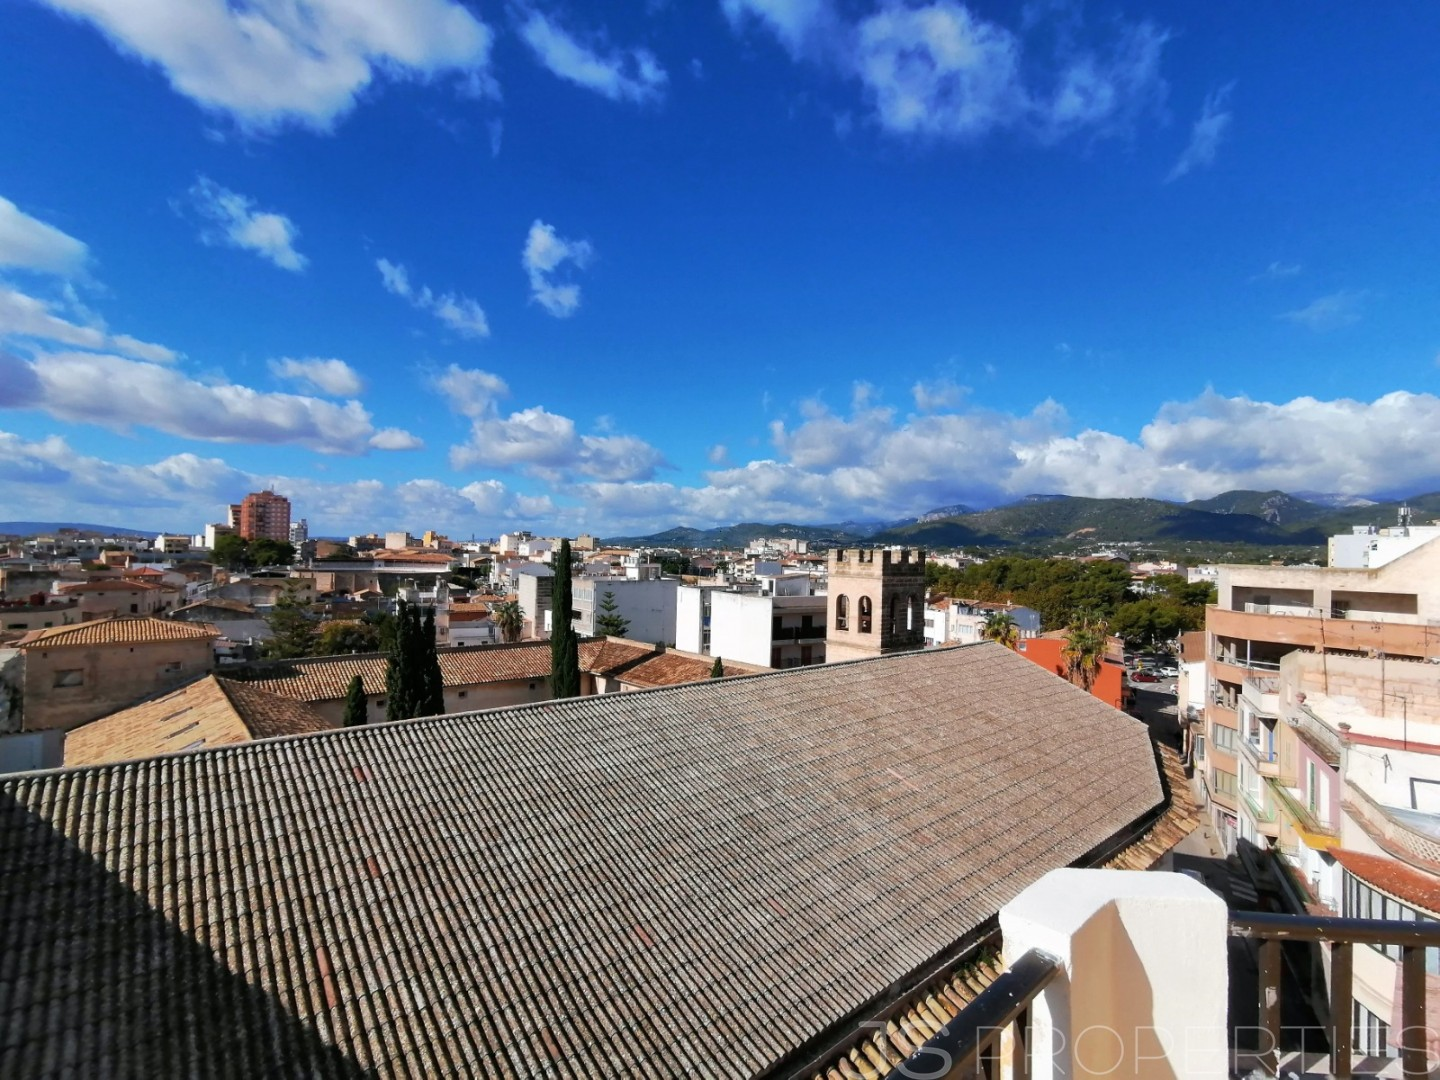 NEWLY RENOVATED PENTHOUSE DUPLEX FOR SALE IN THE HEART OF INCA